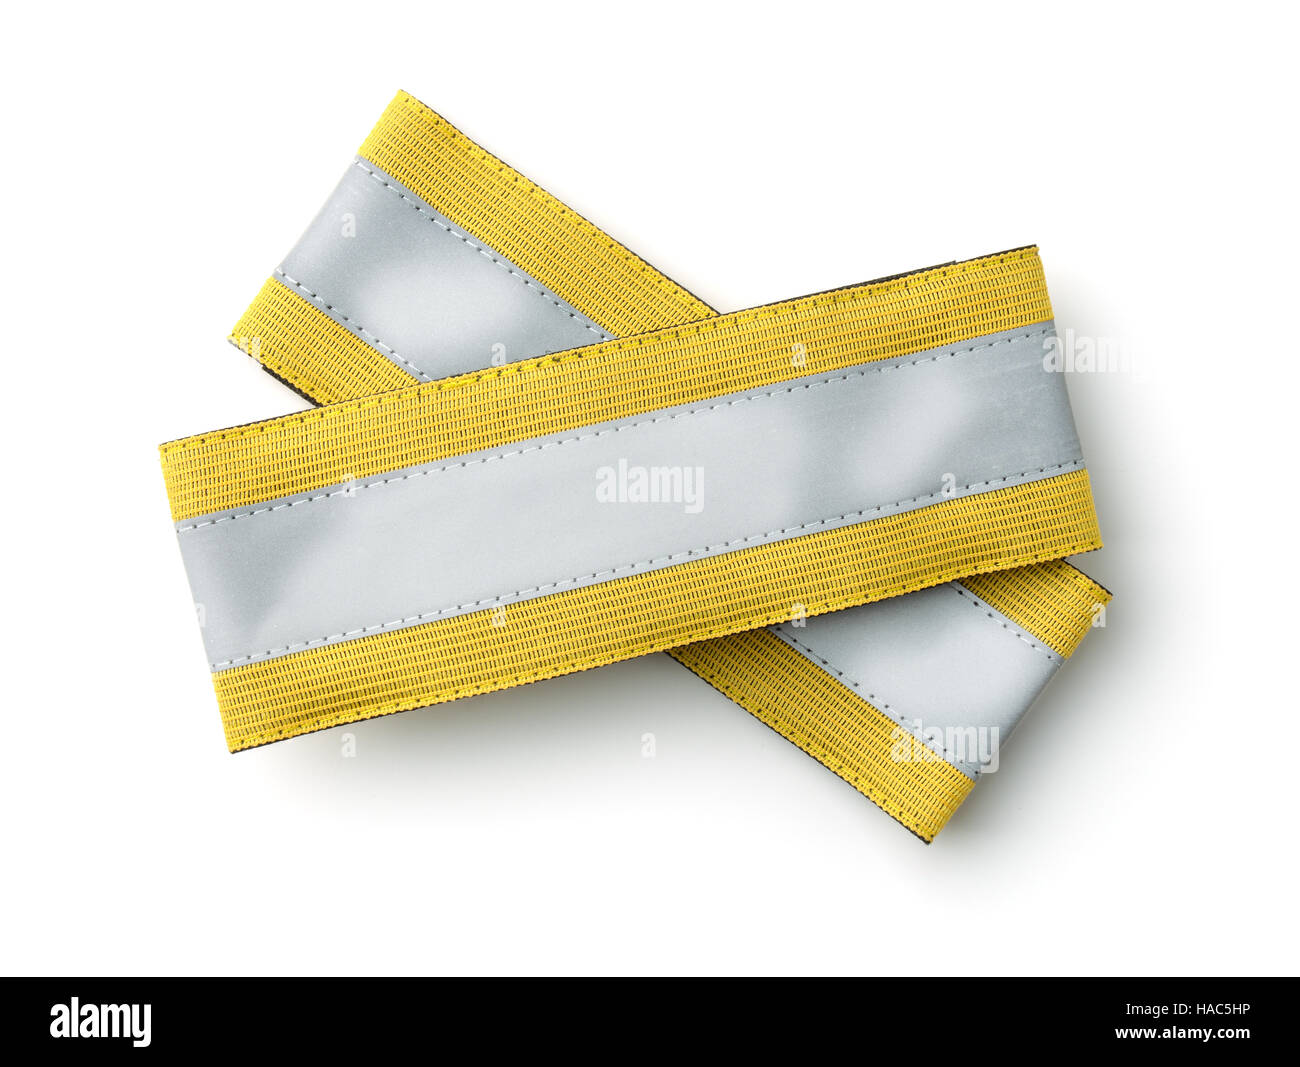 Top view of reflective wristband isolated on white - Stock Image